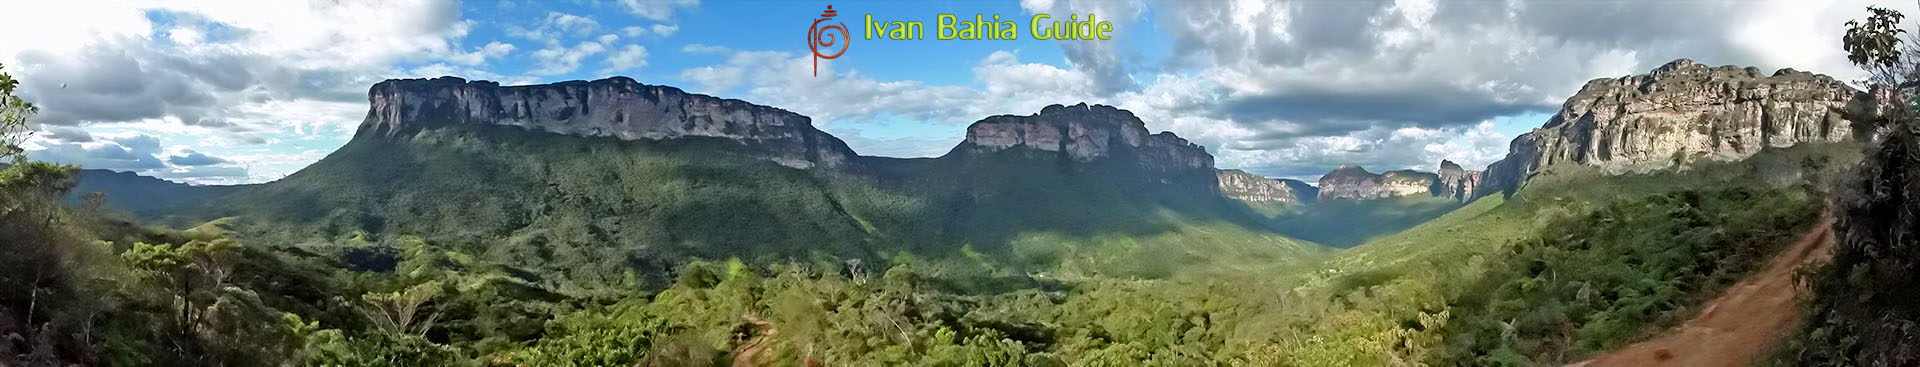 Ivan Bahia tour-guide / hiking in Chapada Diamantina National Park (aka 'the Brazilian Grand Canyon') mountain views while hiking